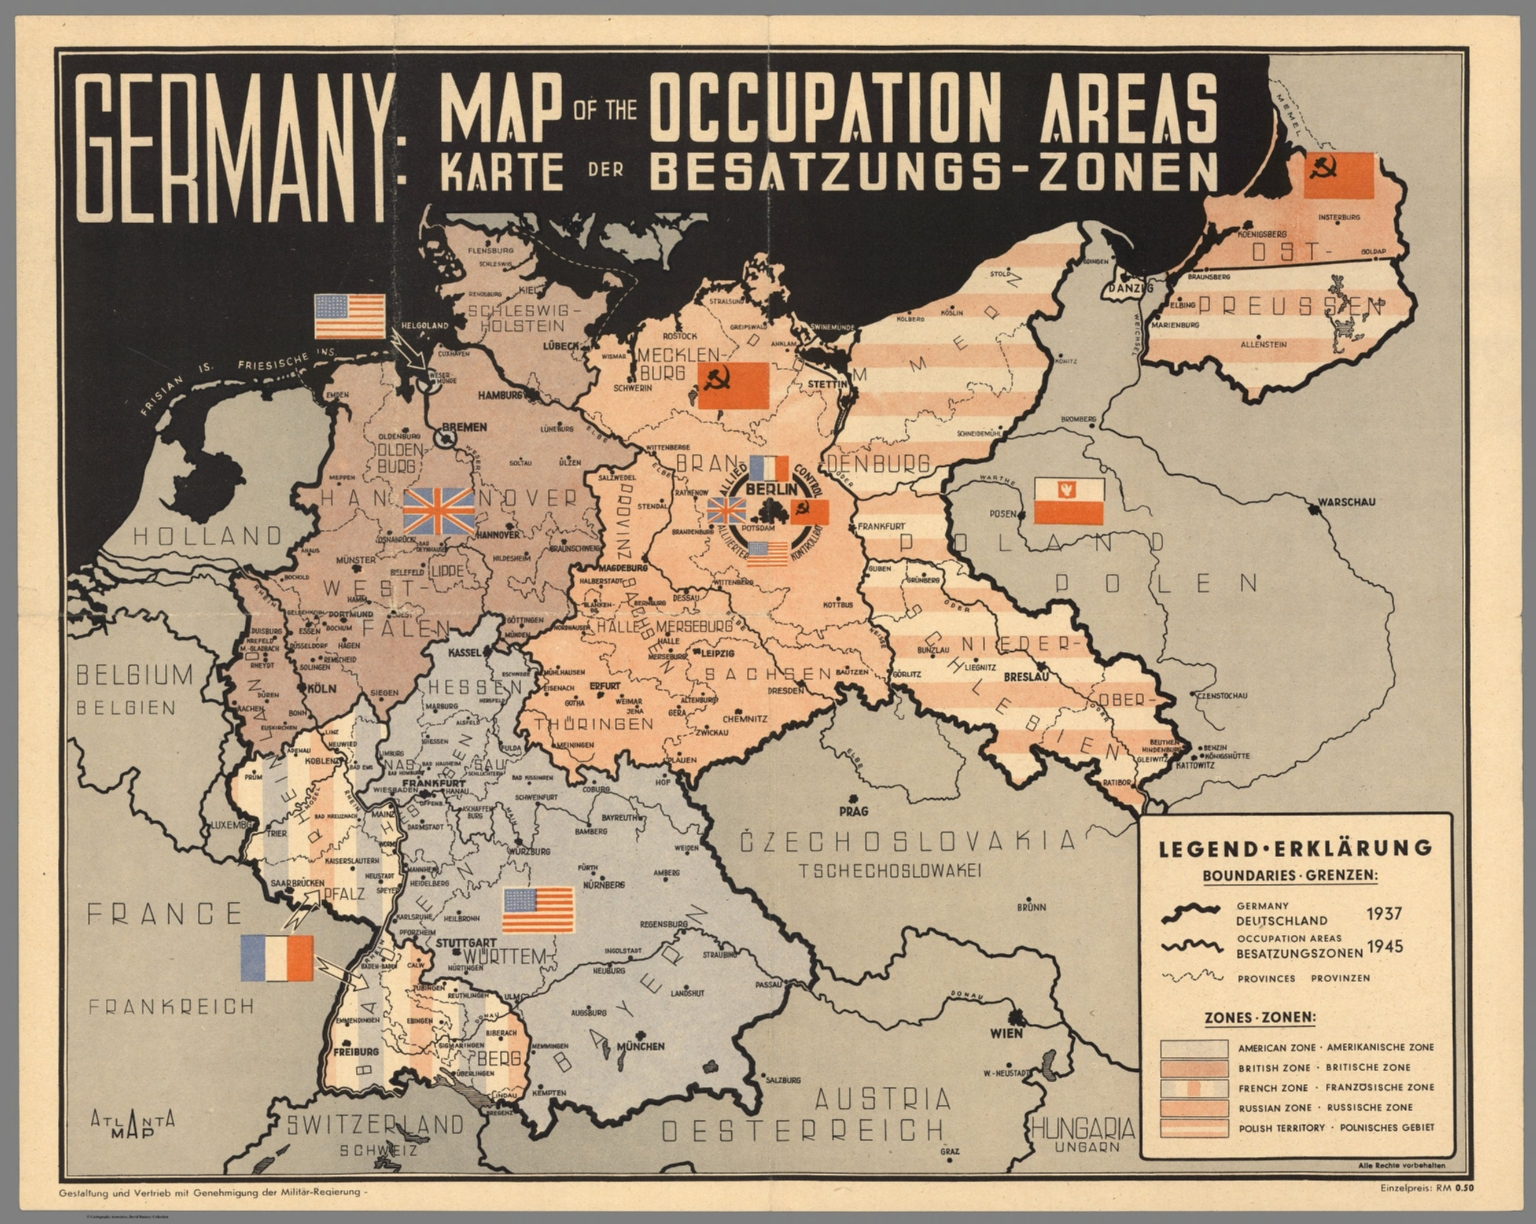 germany map of the occupation areas carte der besatzungs zonen